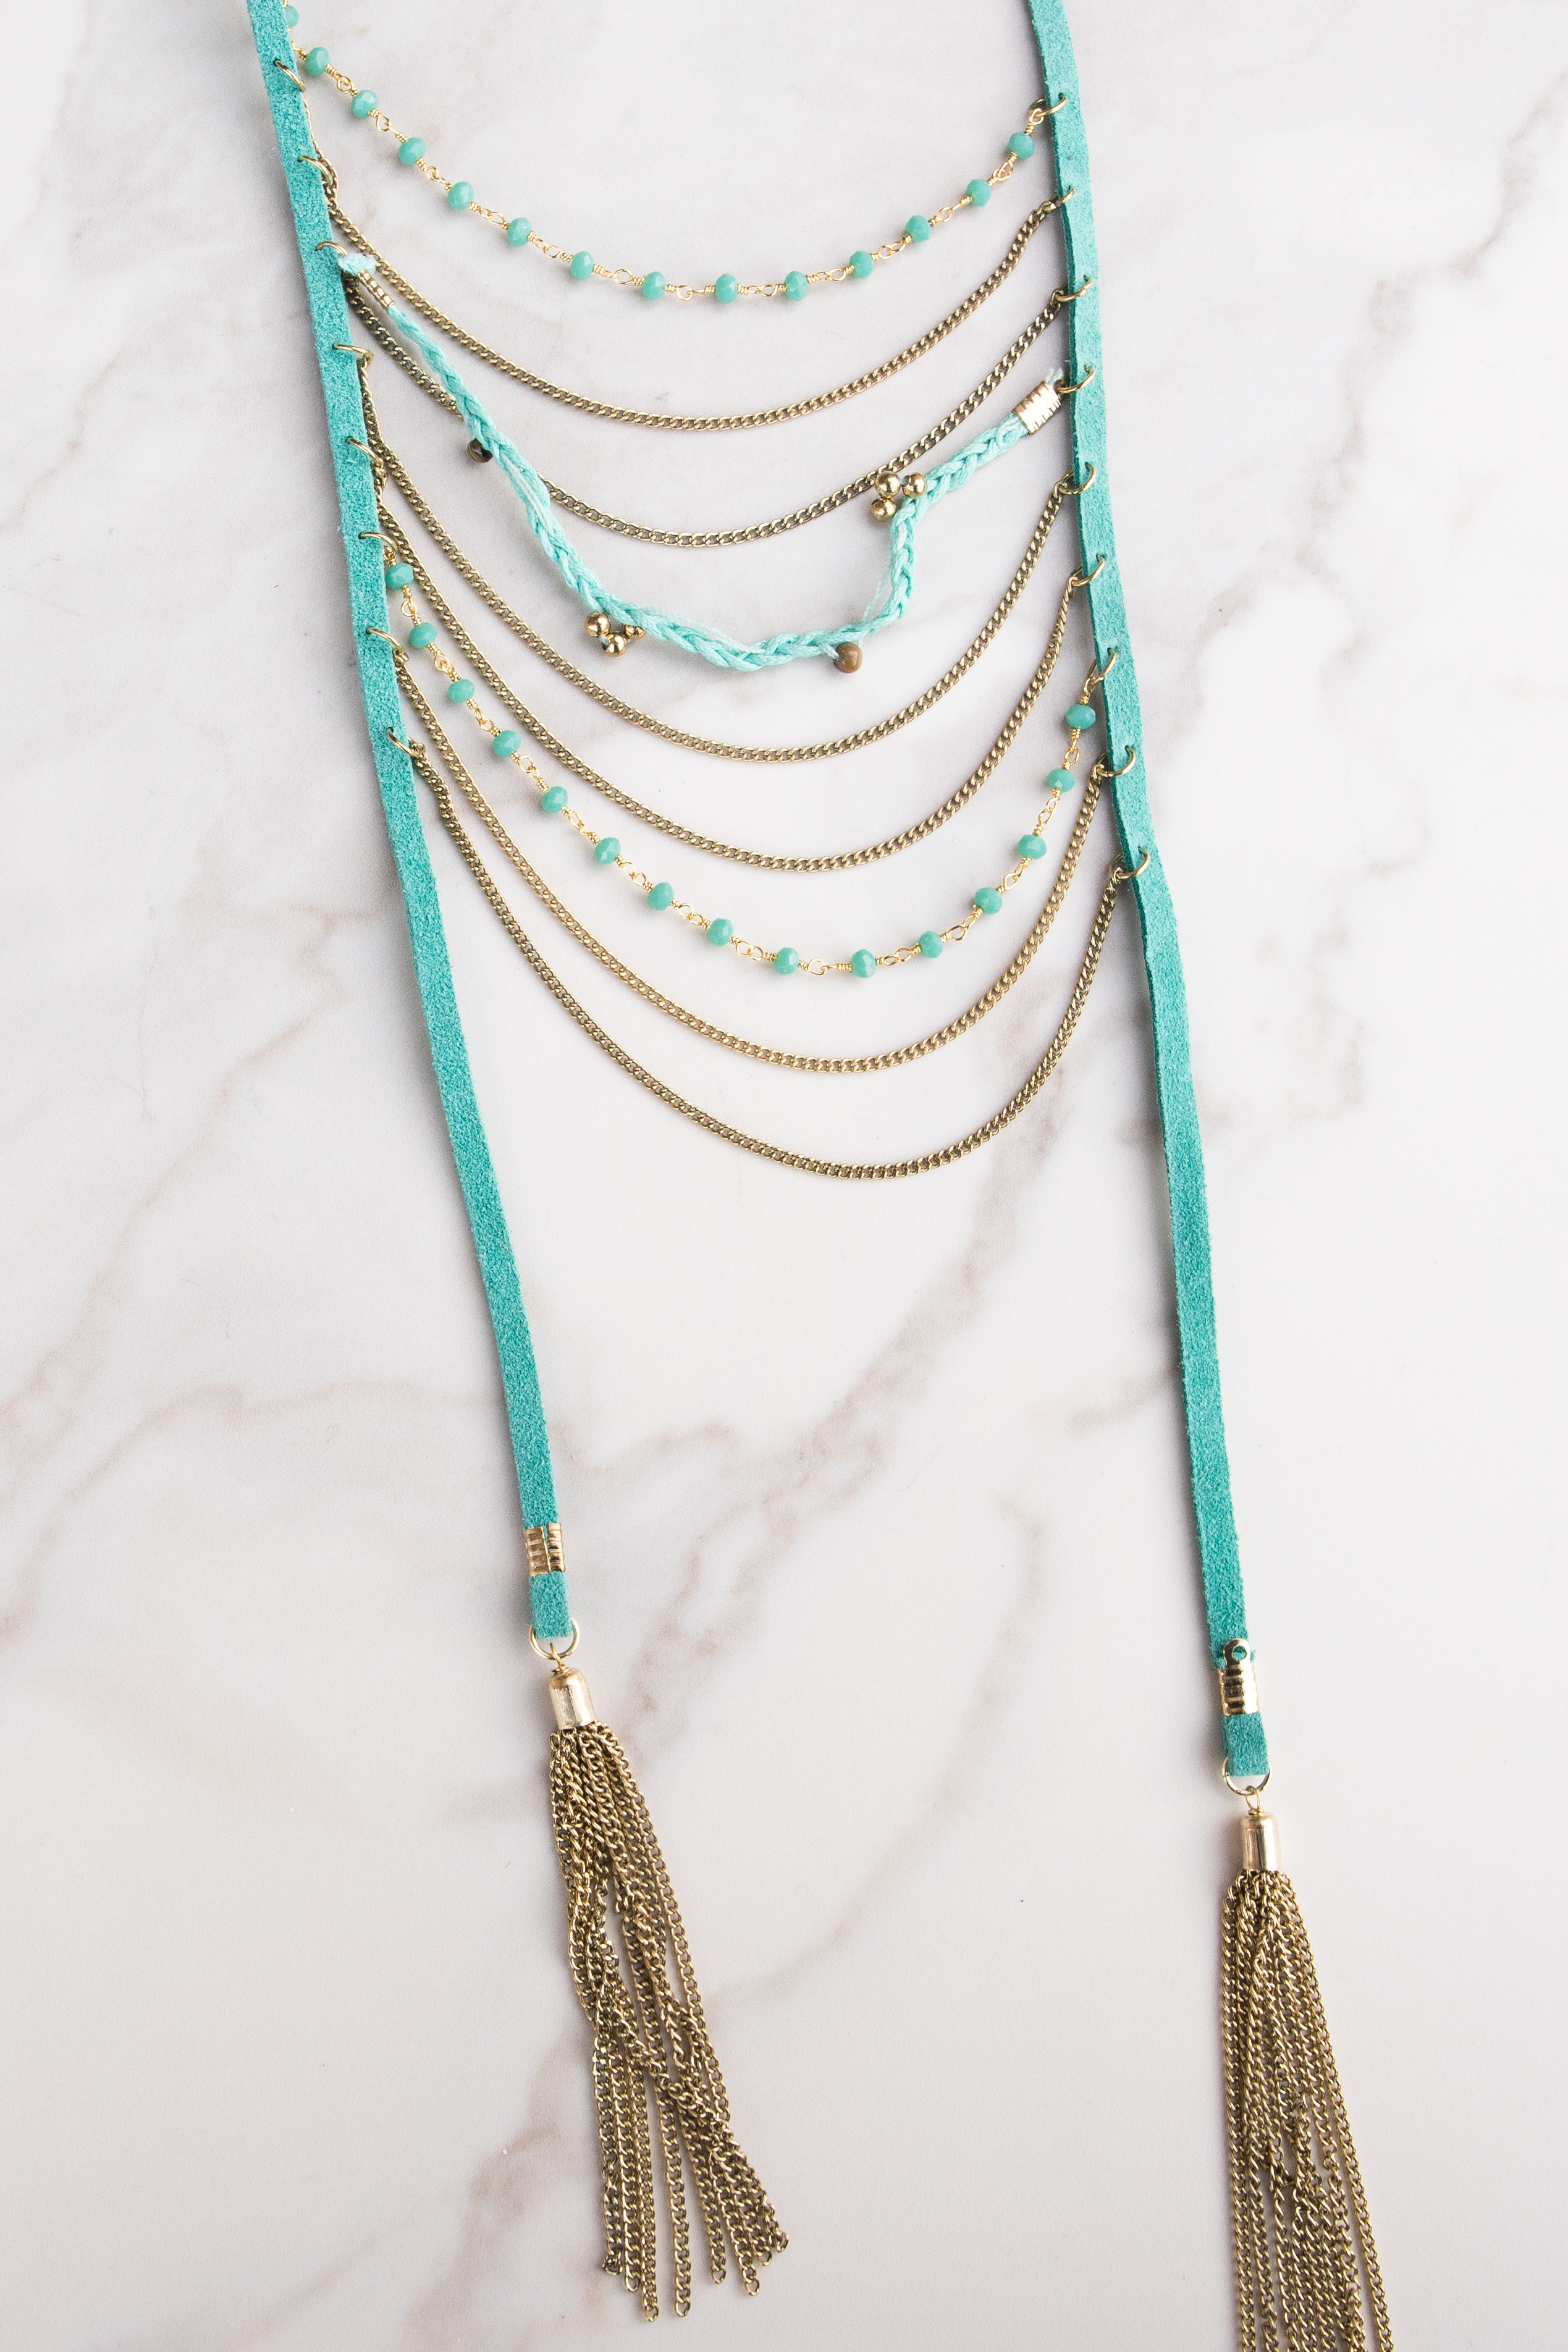 Turquoise Faux Suede Layered Necklace with Gold Tassels